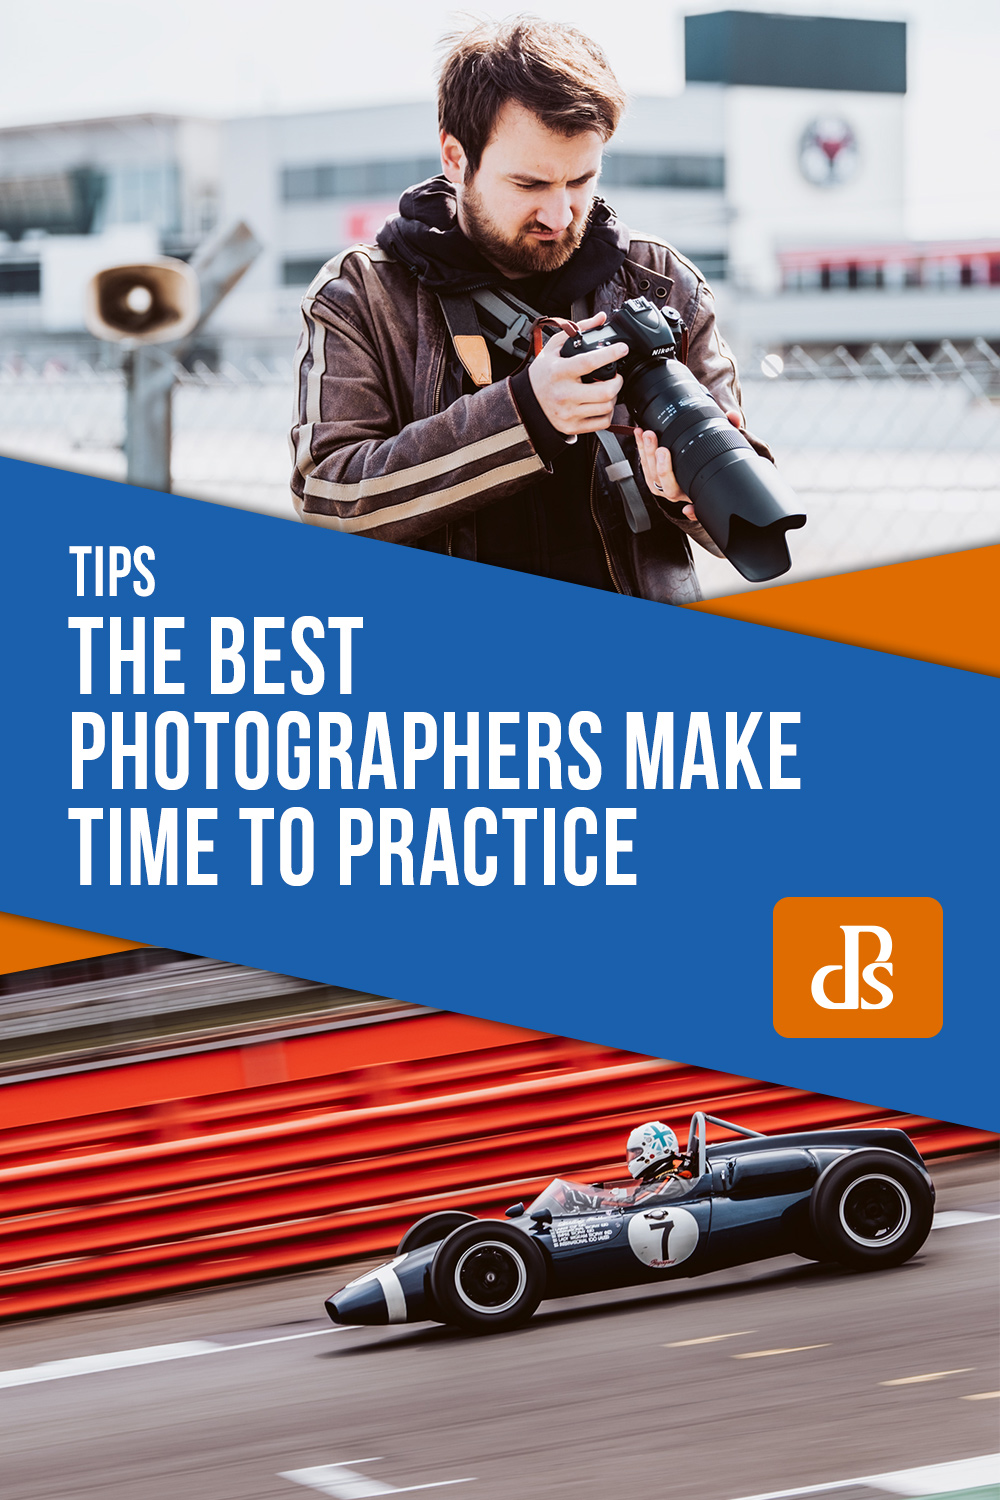 The best photographers make time to practice